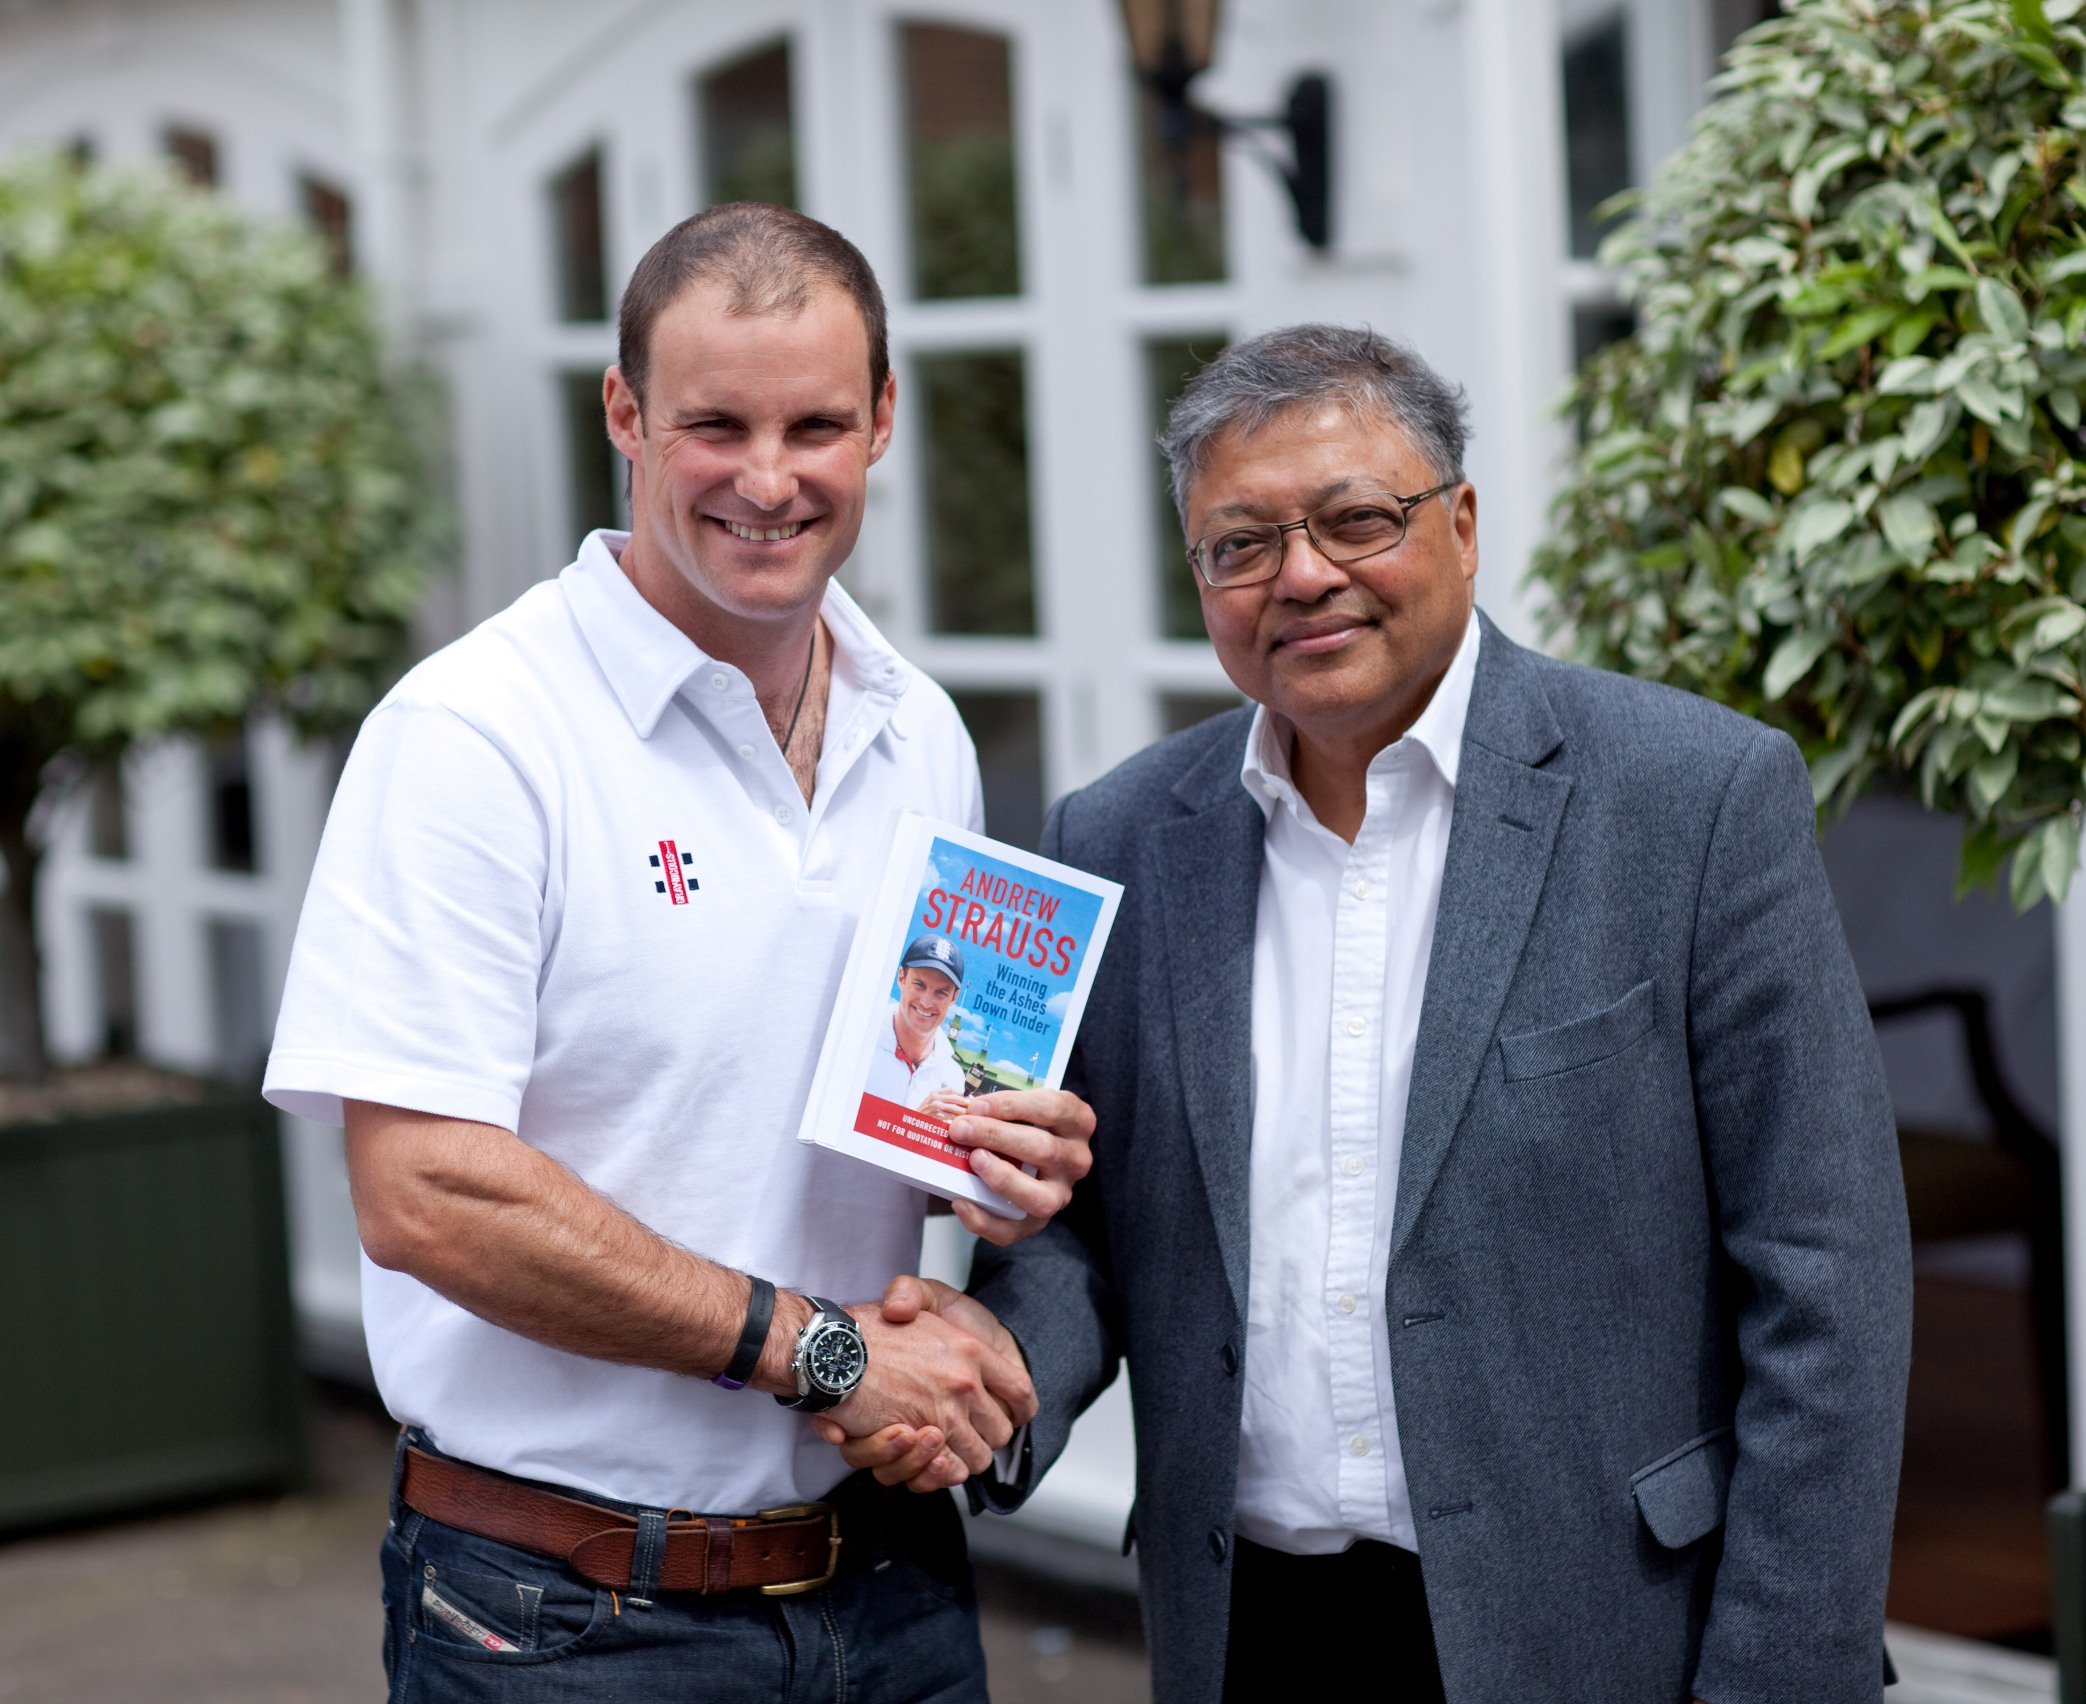 Mihir with Andrew Strauss